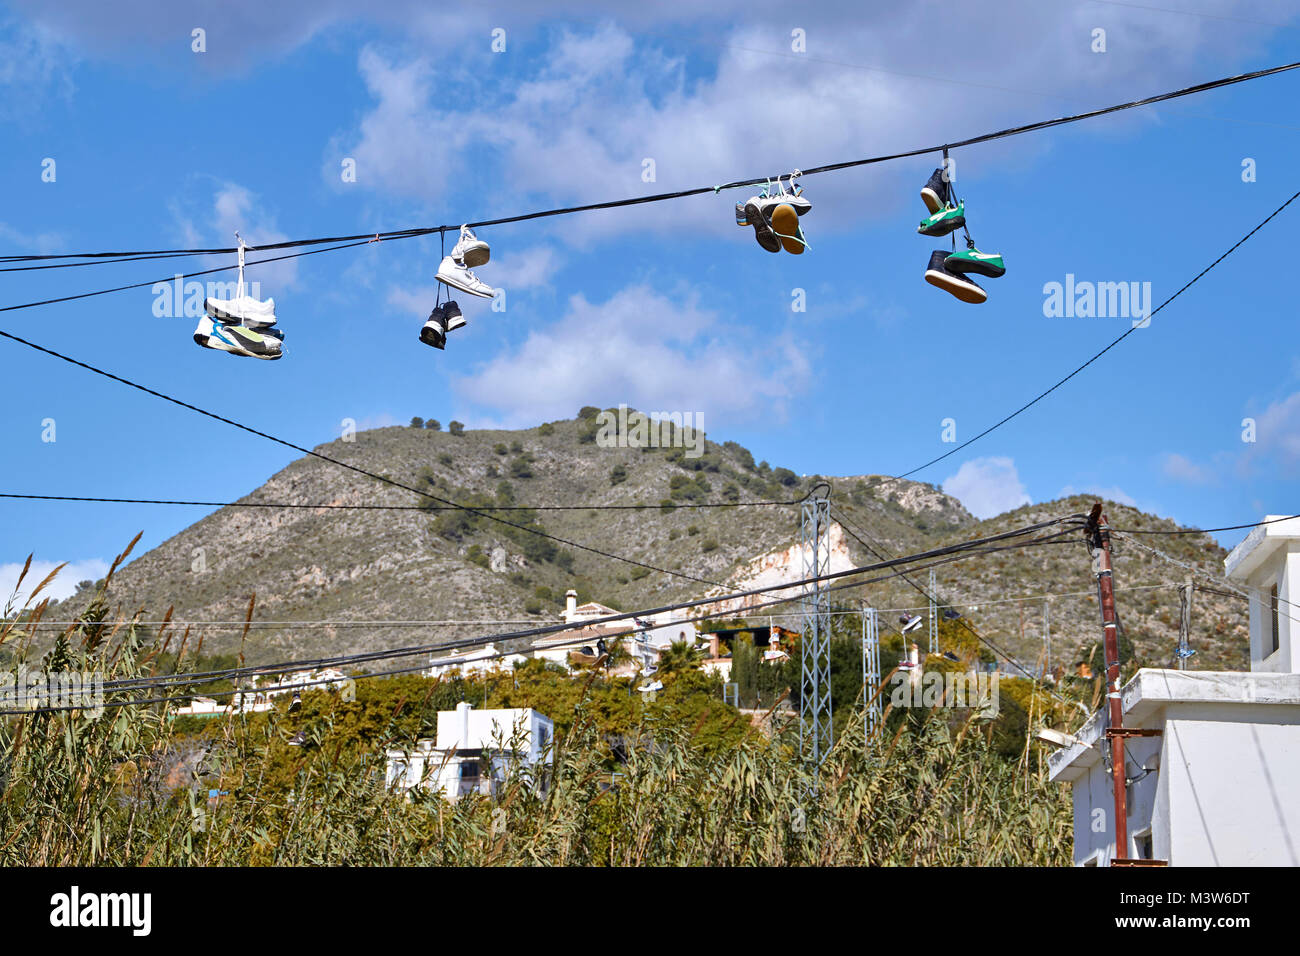 worn out shoes on a line, Rio Chillar, Andalusia, Spain - Stock Image